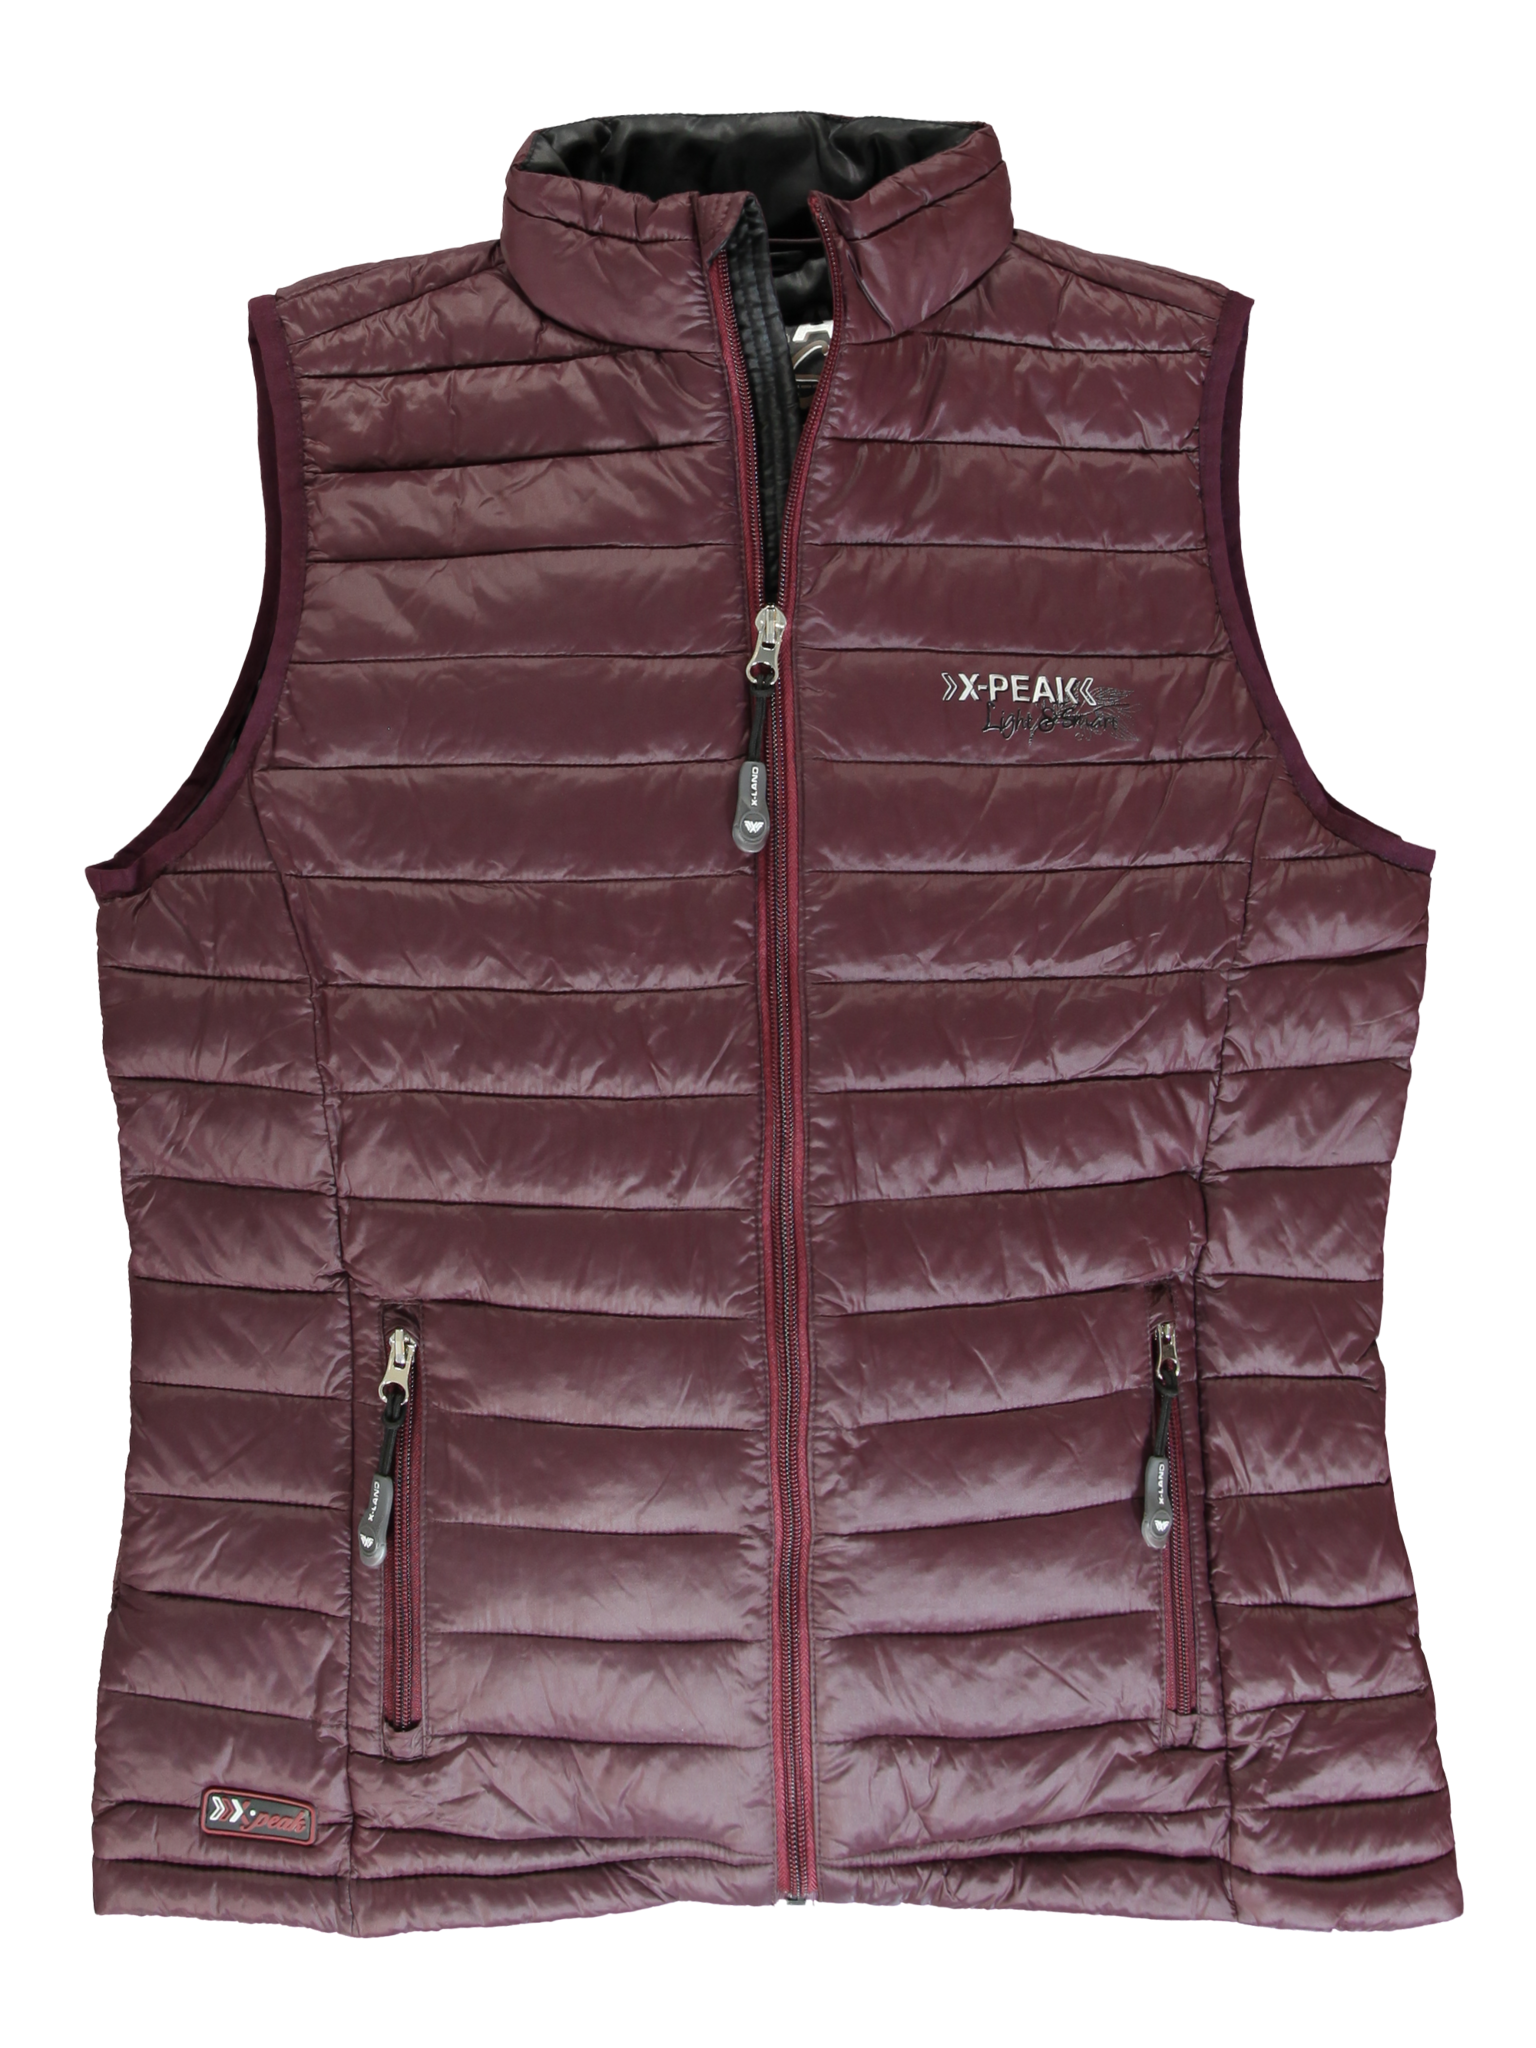 All Brands | Winterproducts Ladies | Bodywarmer | 24 pcs/box